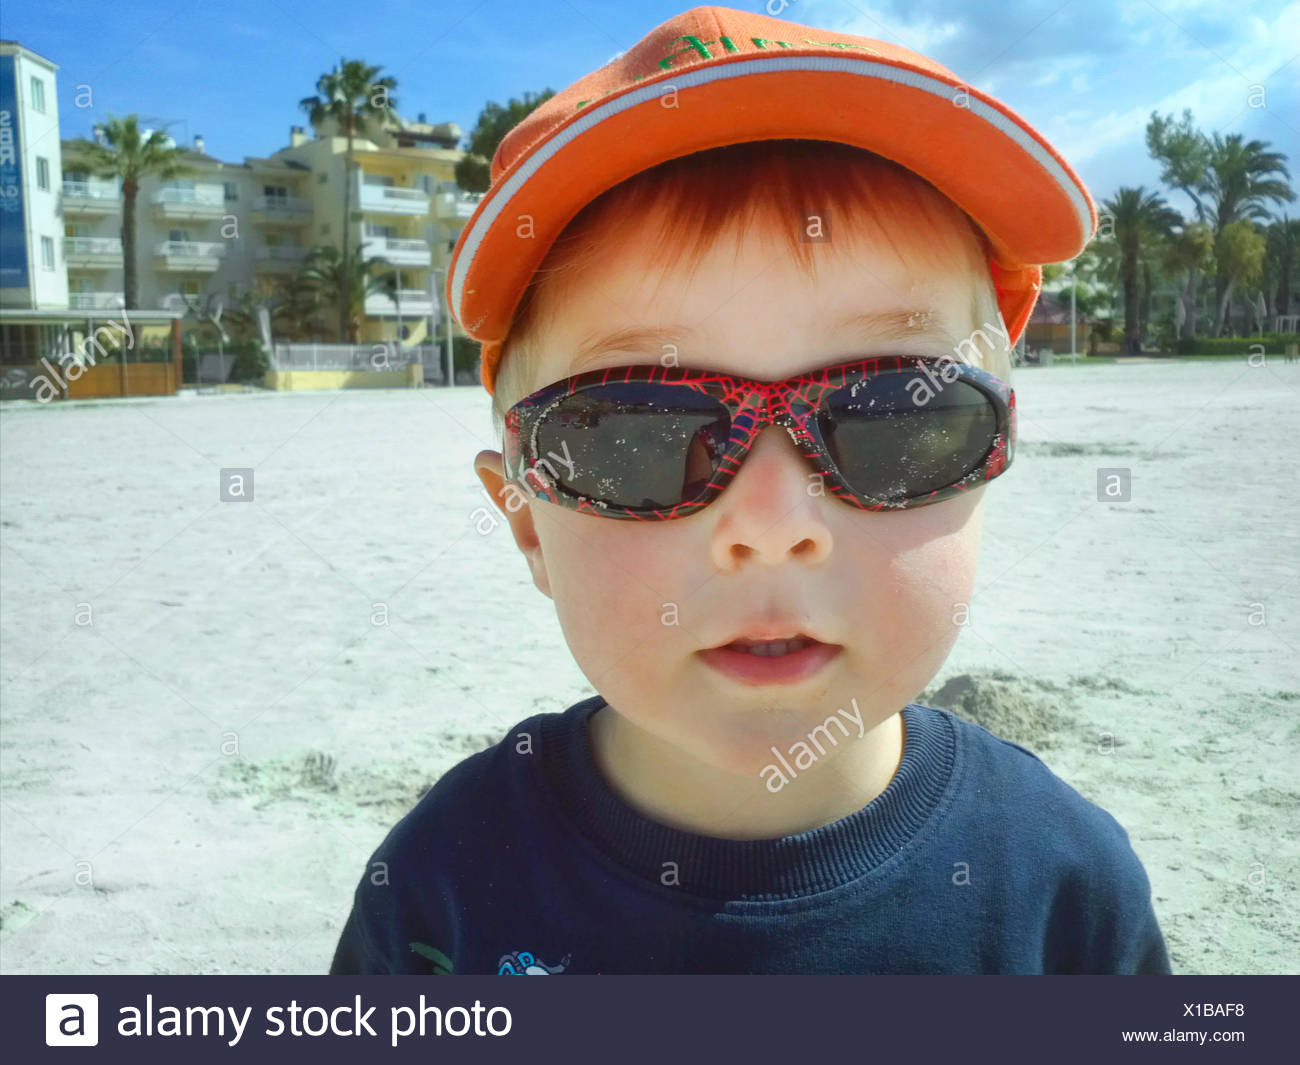 1a98011c36e7 cool little boy with sunglasses and baseball cap, Netherlands - Stock Image